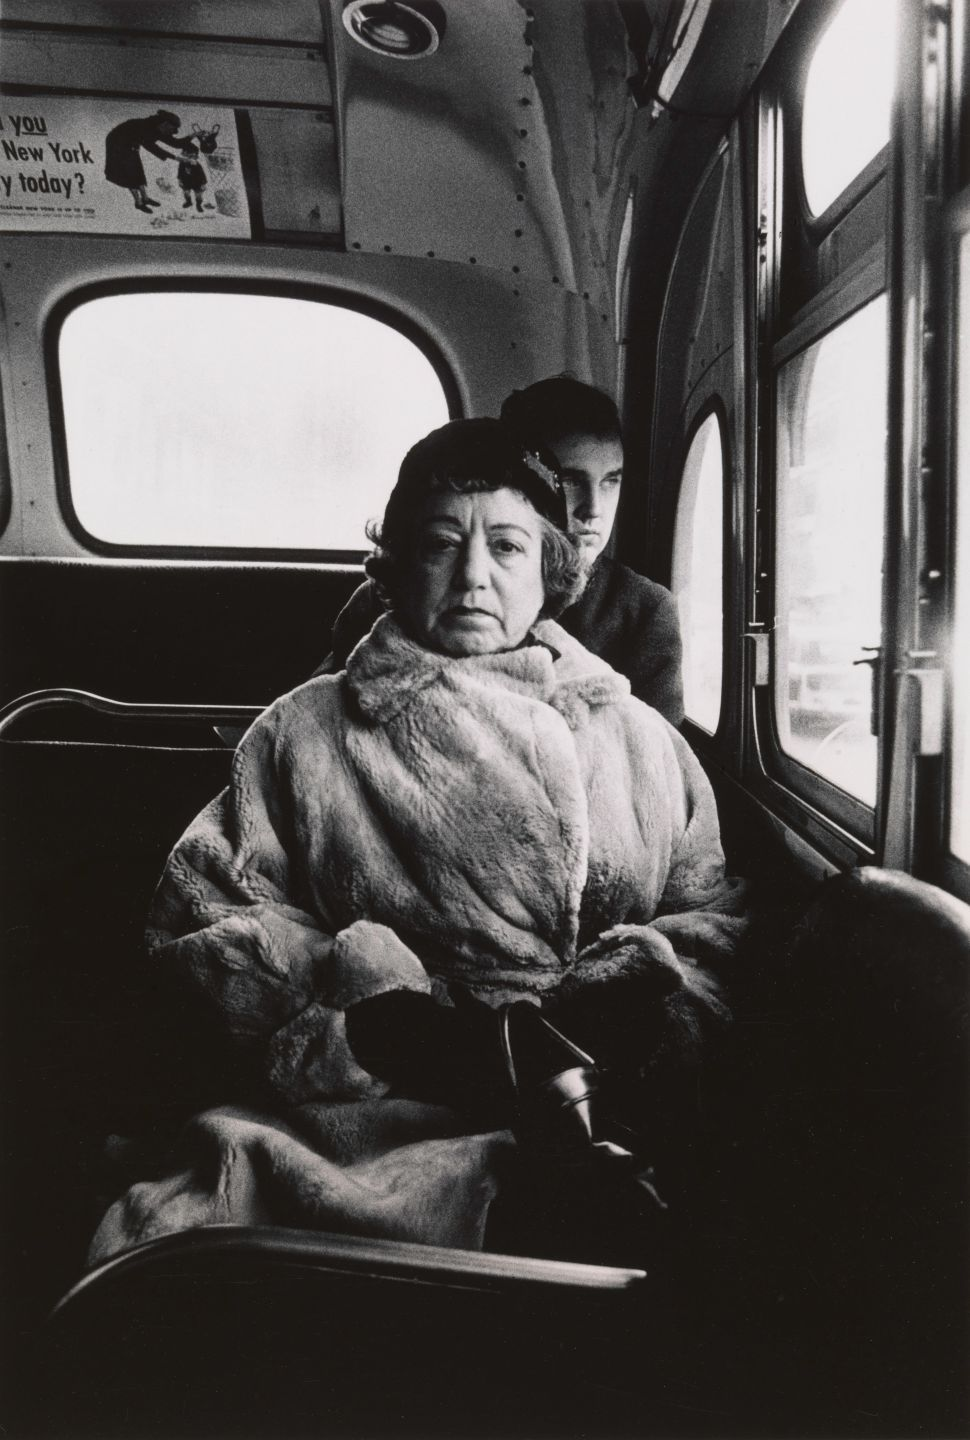 Previously Unseen Works By Diane Arbus Reveal Her Transformation Into an Artist